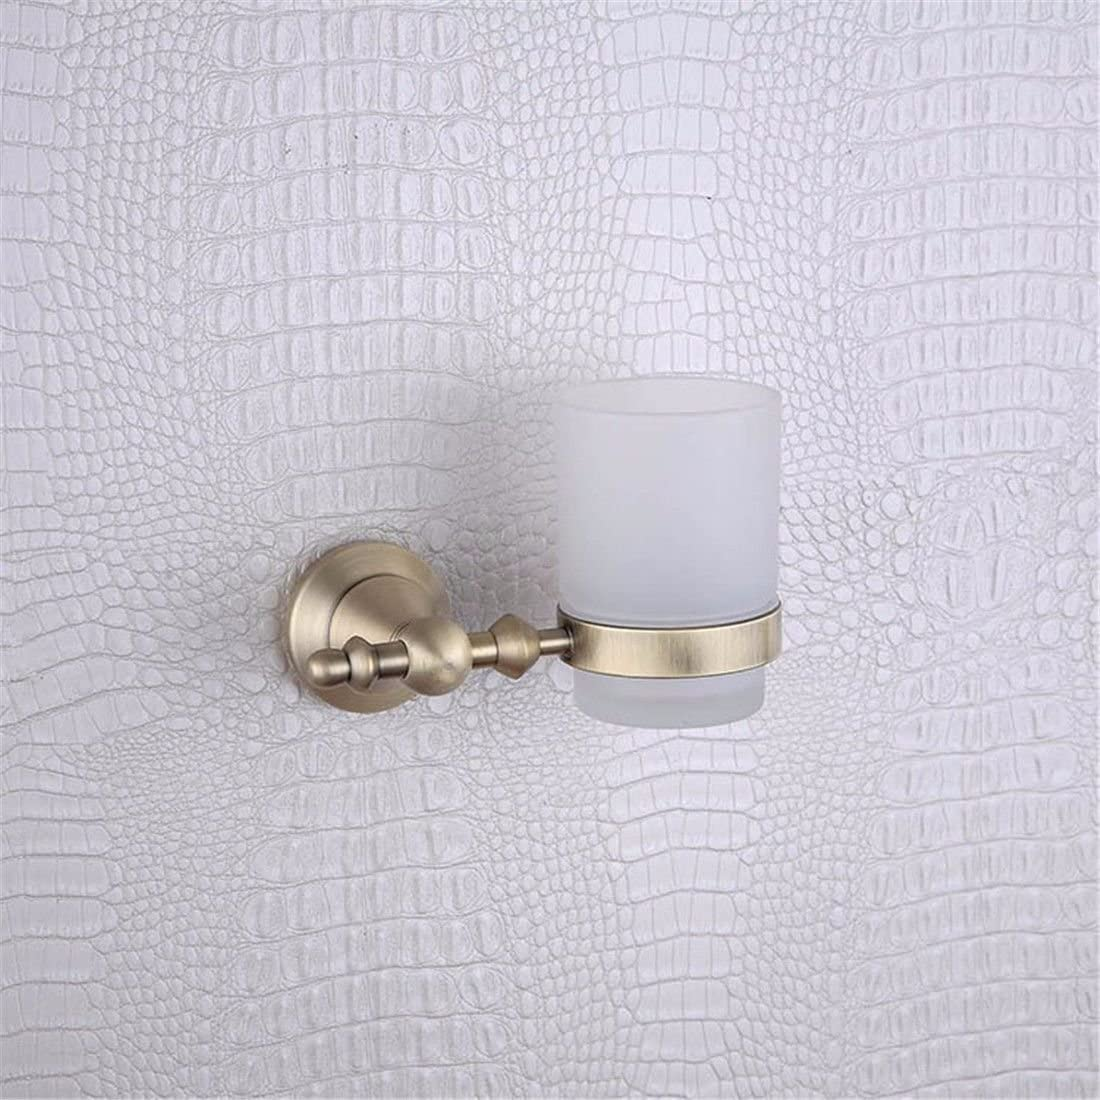 AiRobin-Continental Brass Antique Round Base Wall Mounted Toothbrush Cup Holder Bathroom Accessory